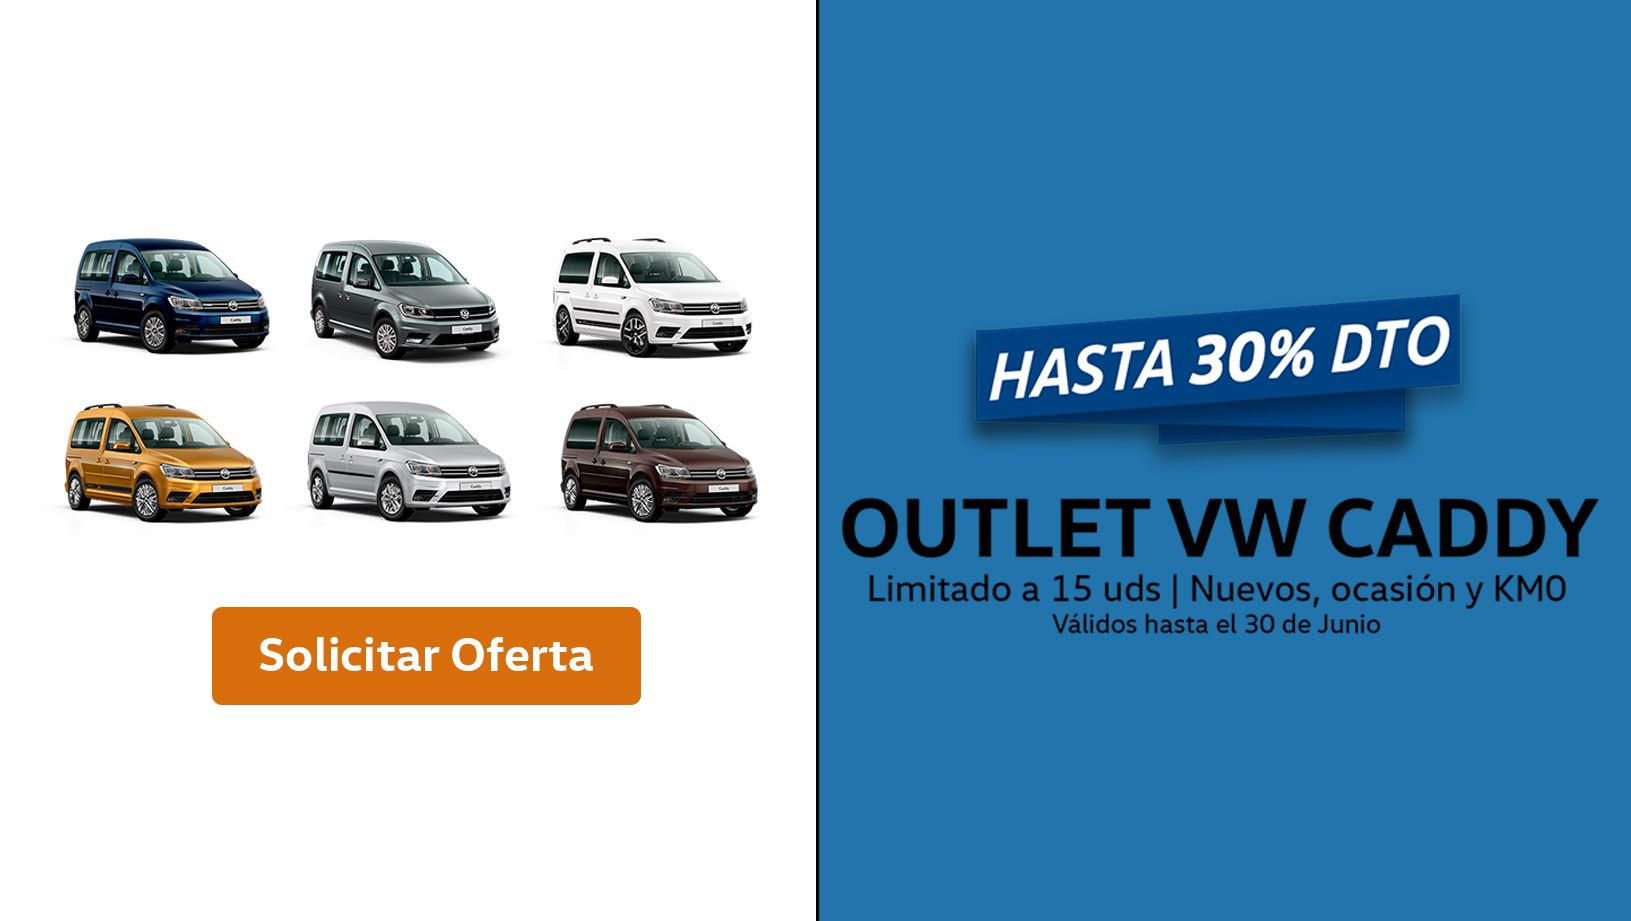 Outlet VW Caddy